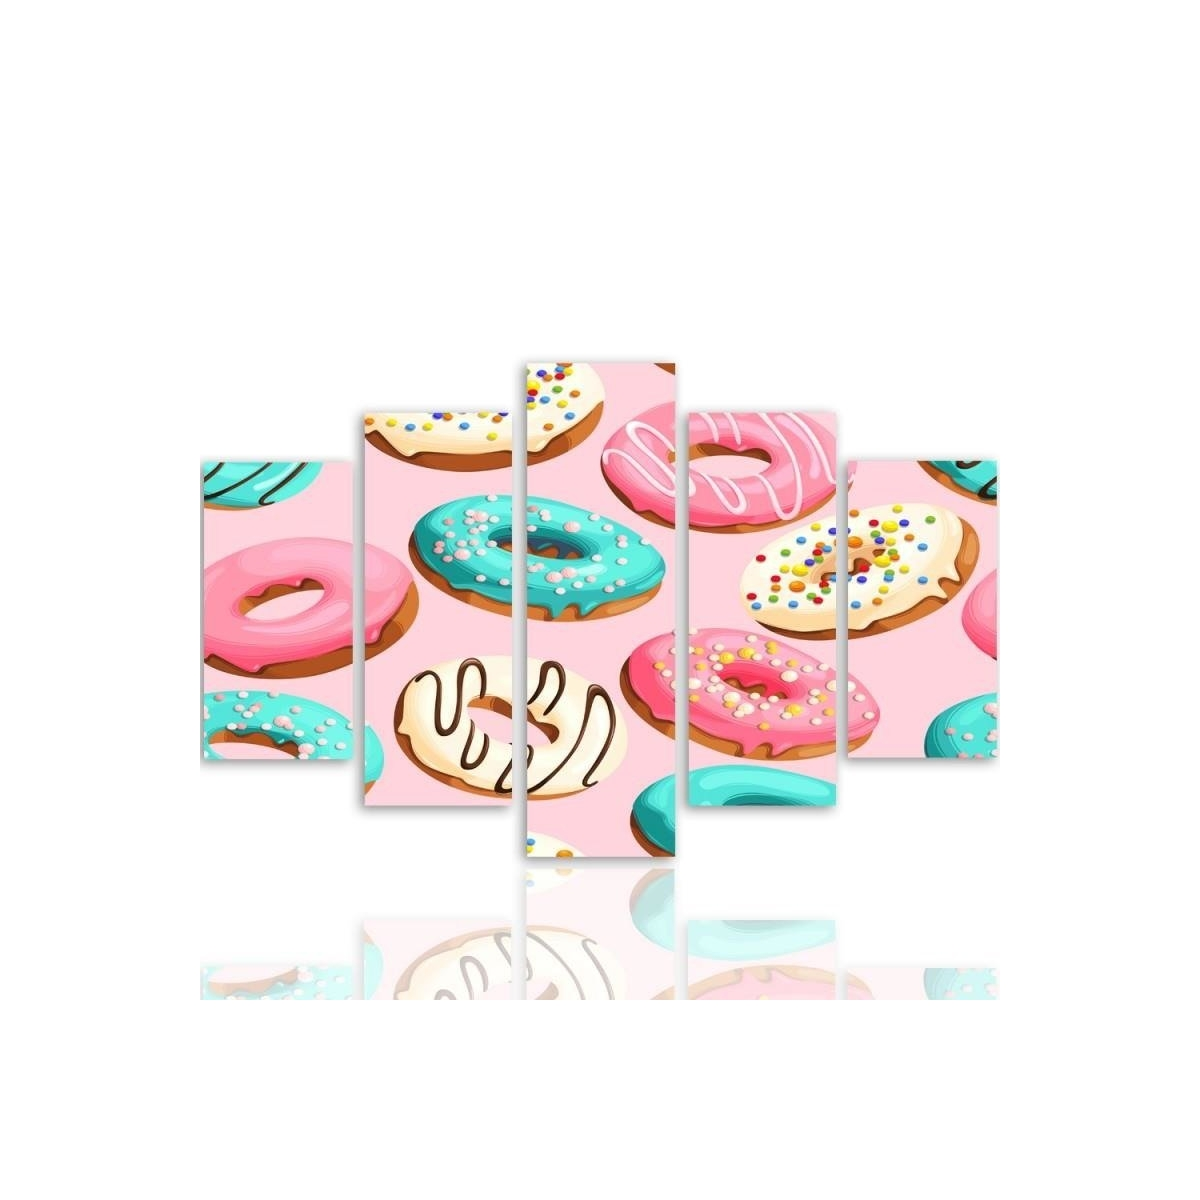 Five Part Picture On Canvas, Pentaptych, Type A, Donuts100x150